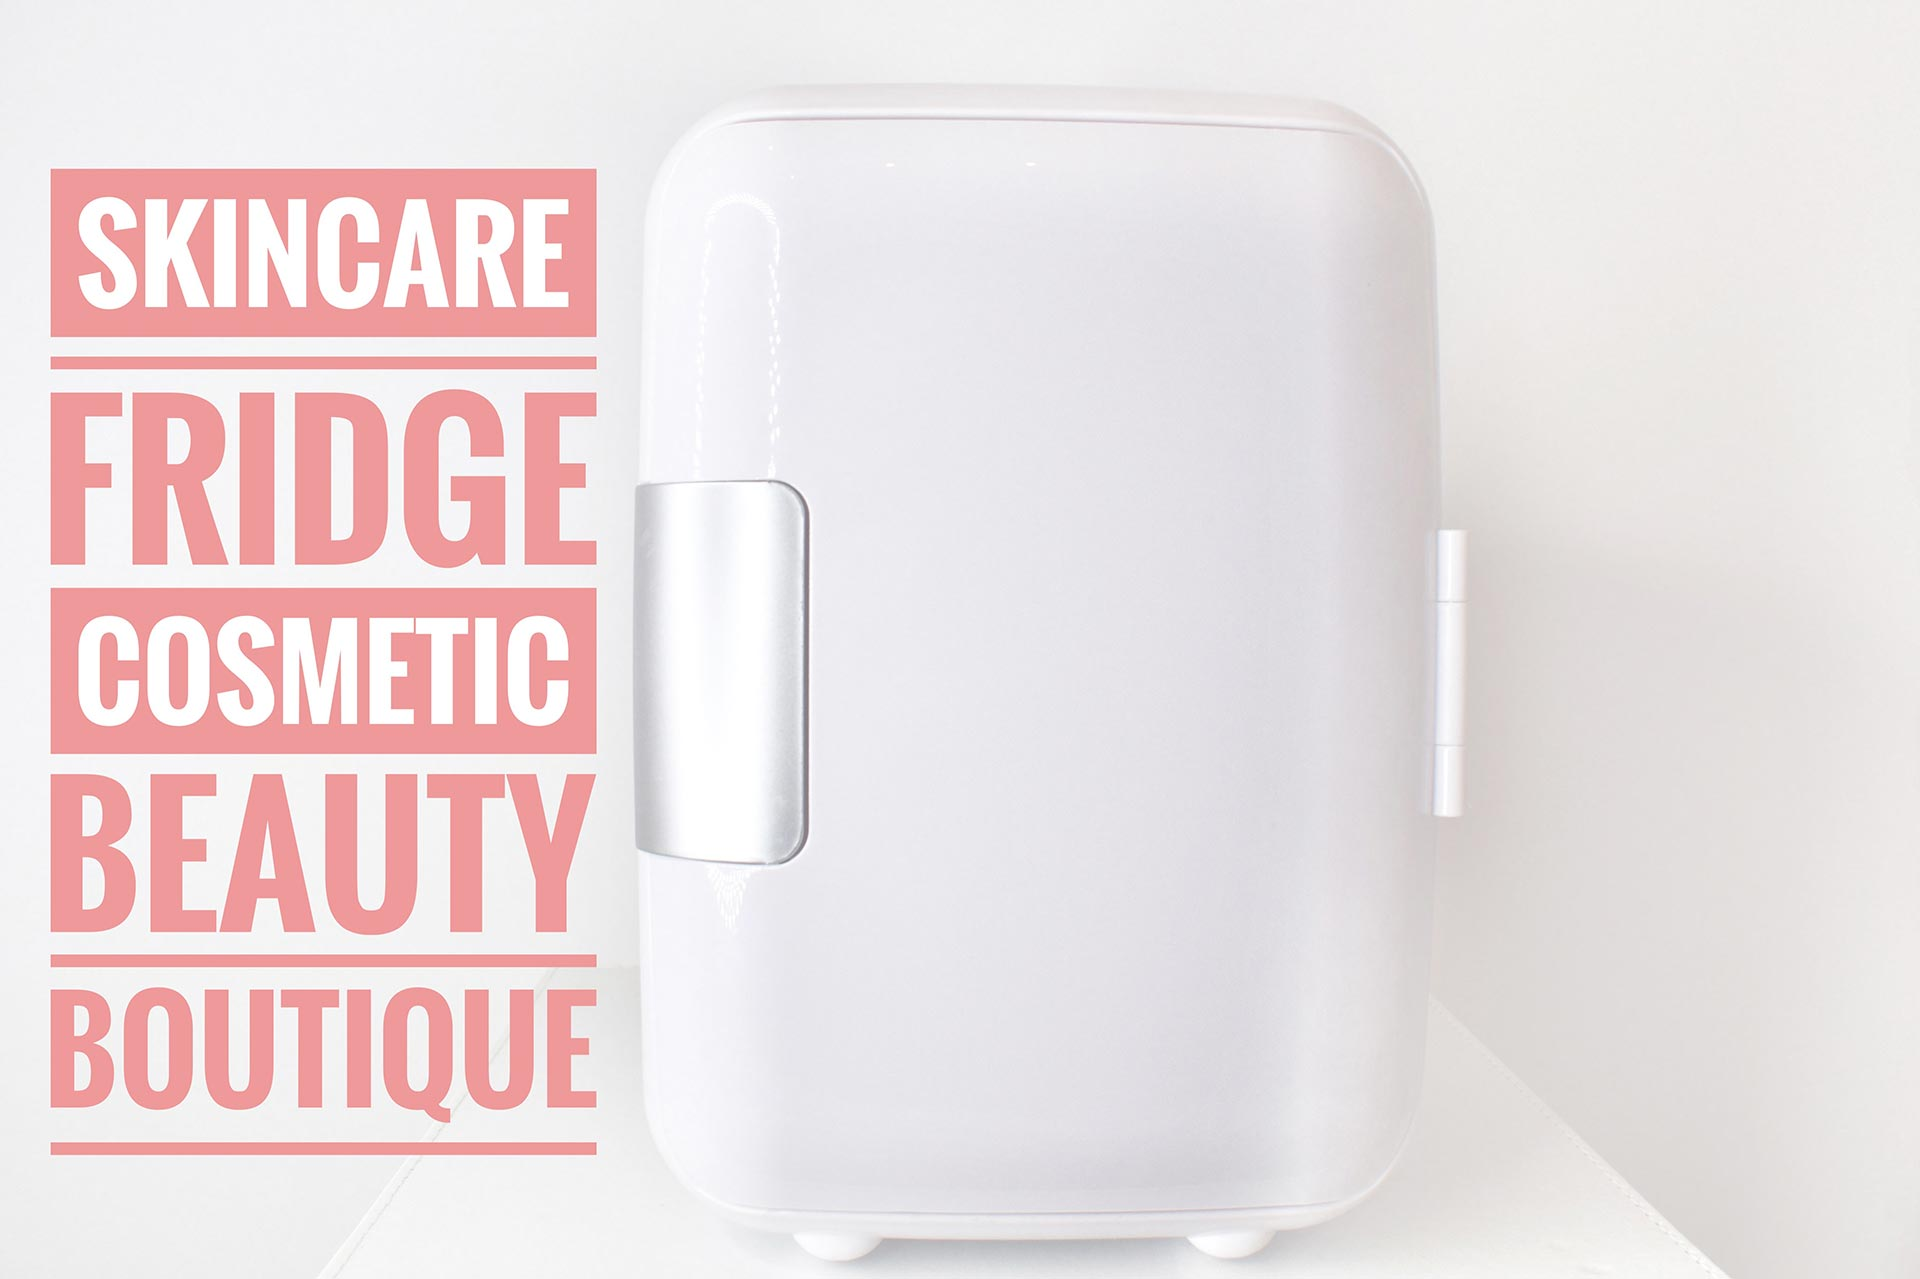 SkinCare-Fridge-Image